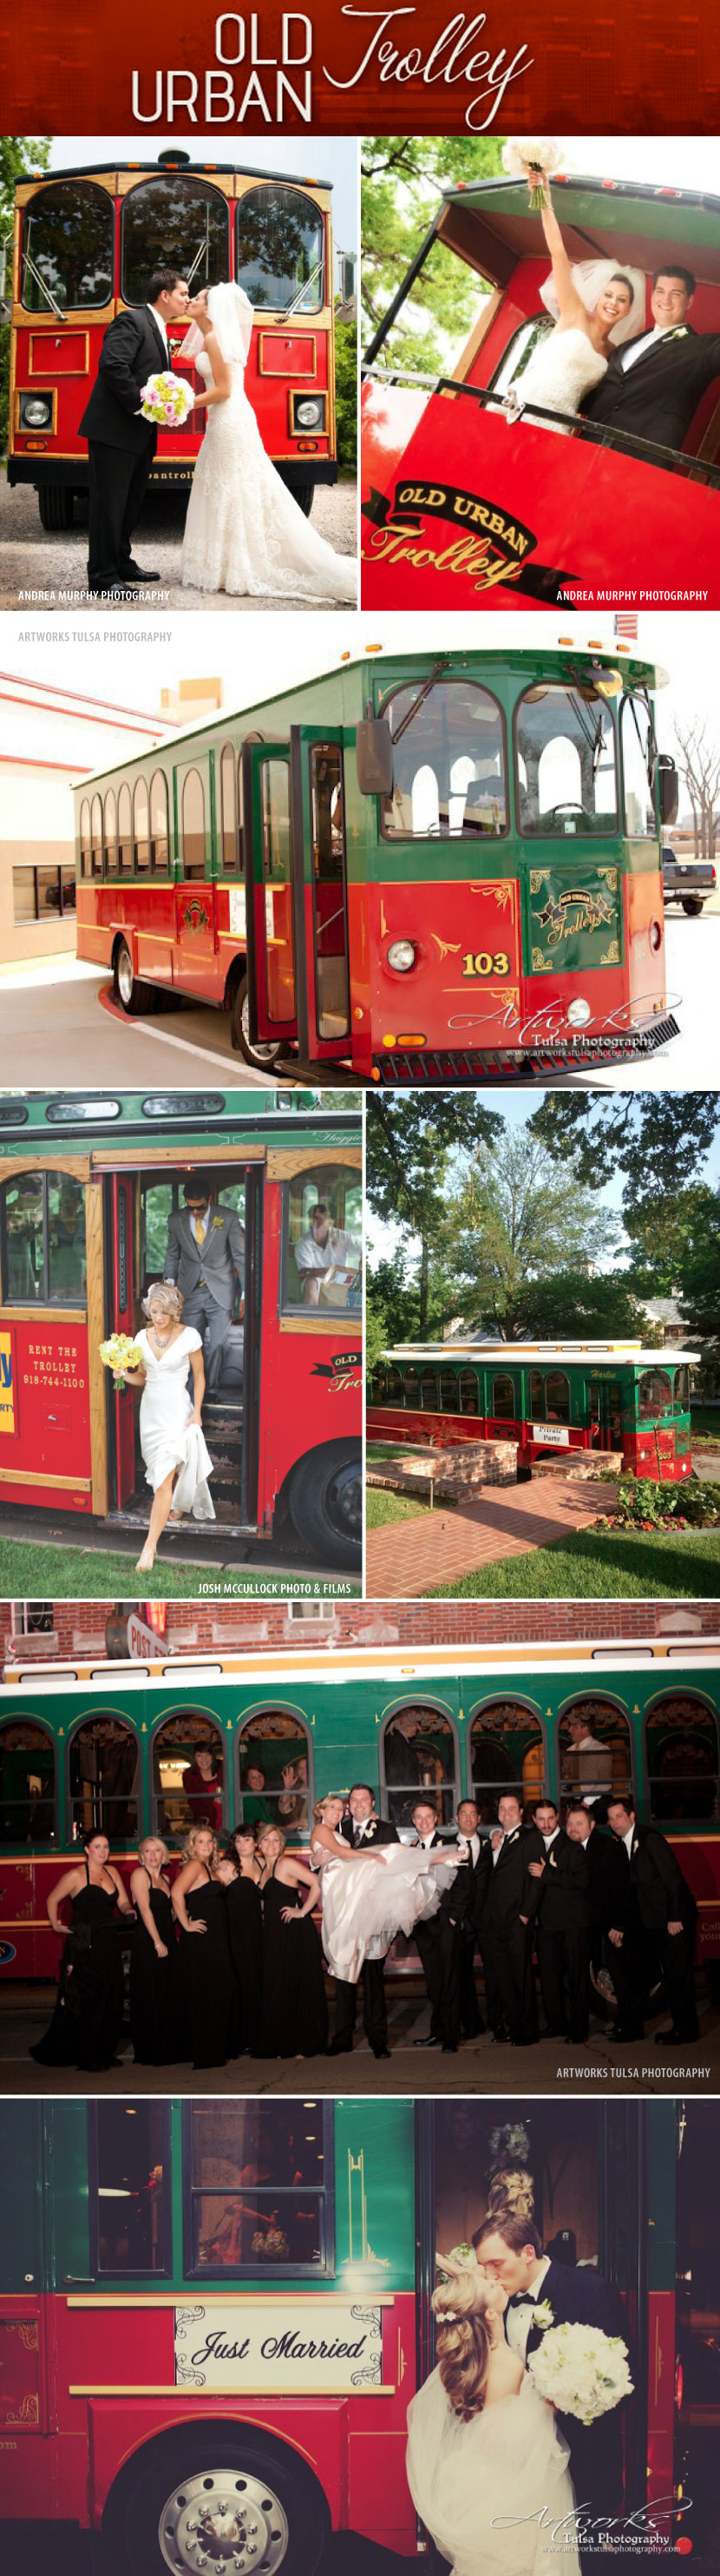 Oklahoma wedding transportation from Old Urban Trolley